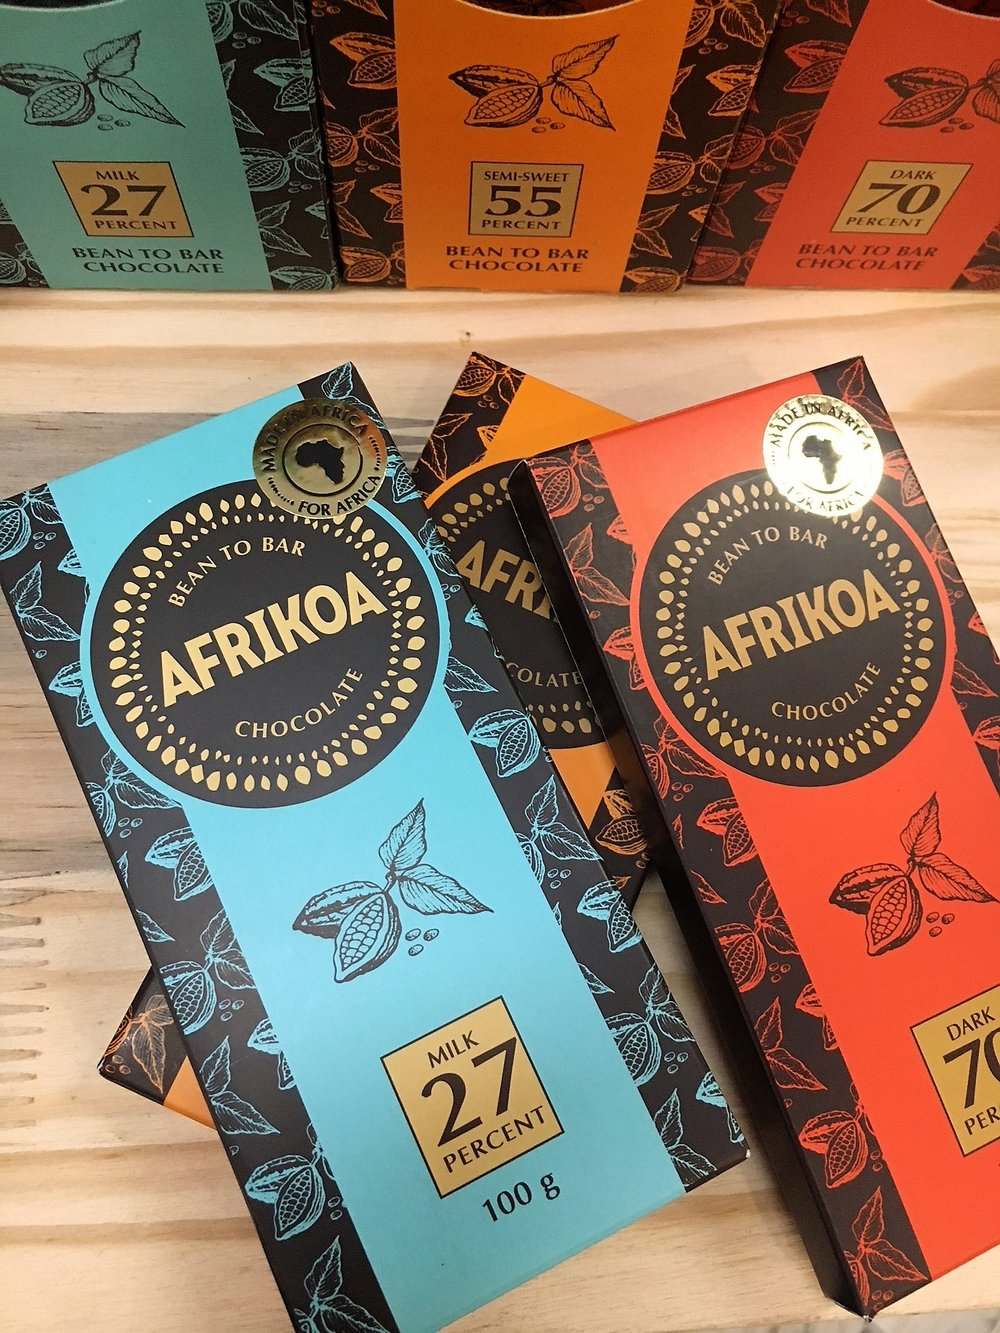 Afrikoa Chocolate Bars